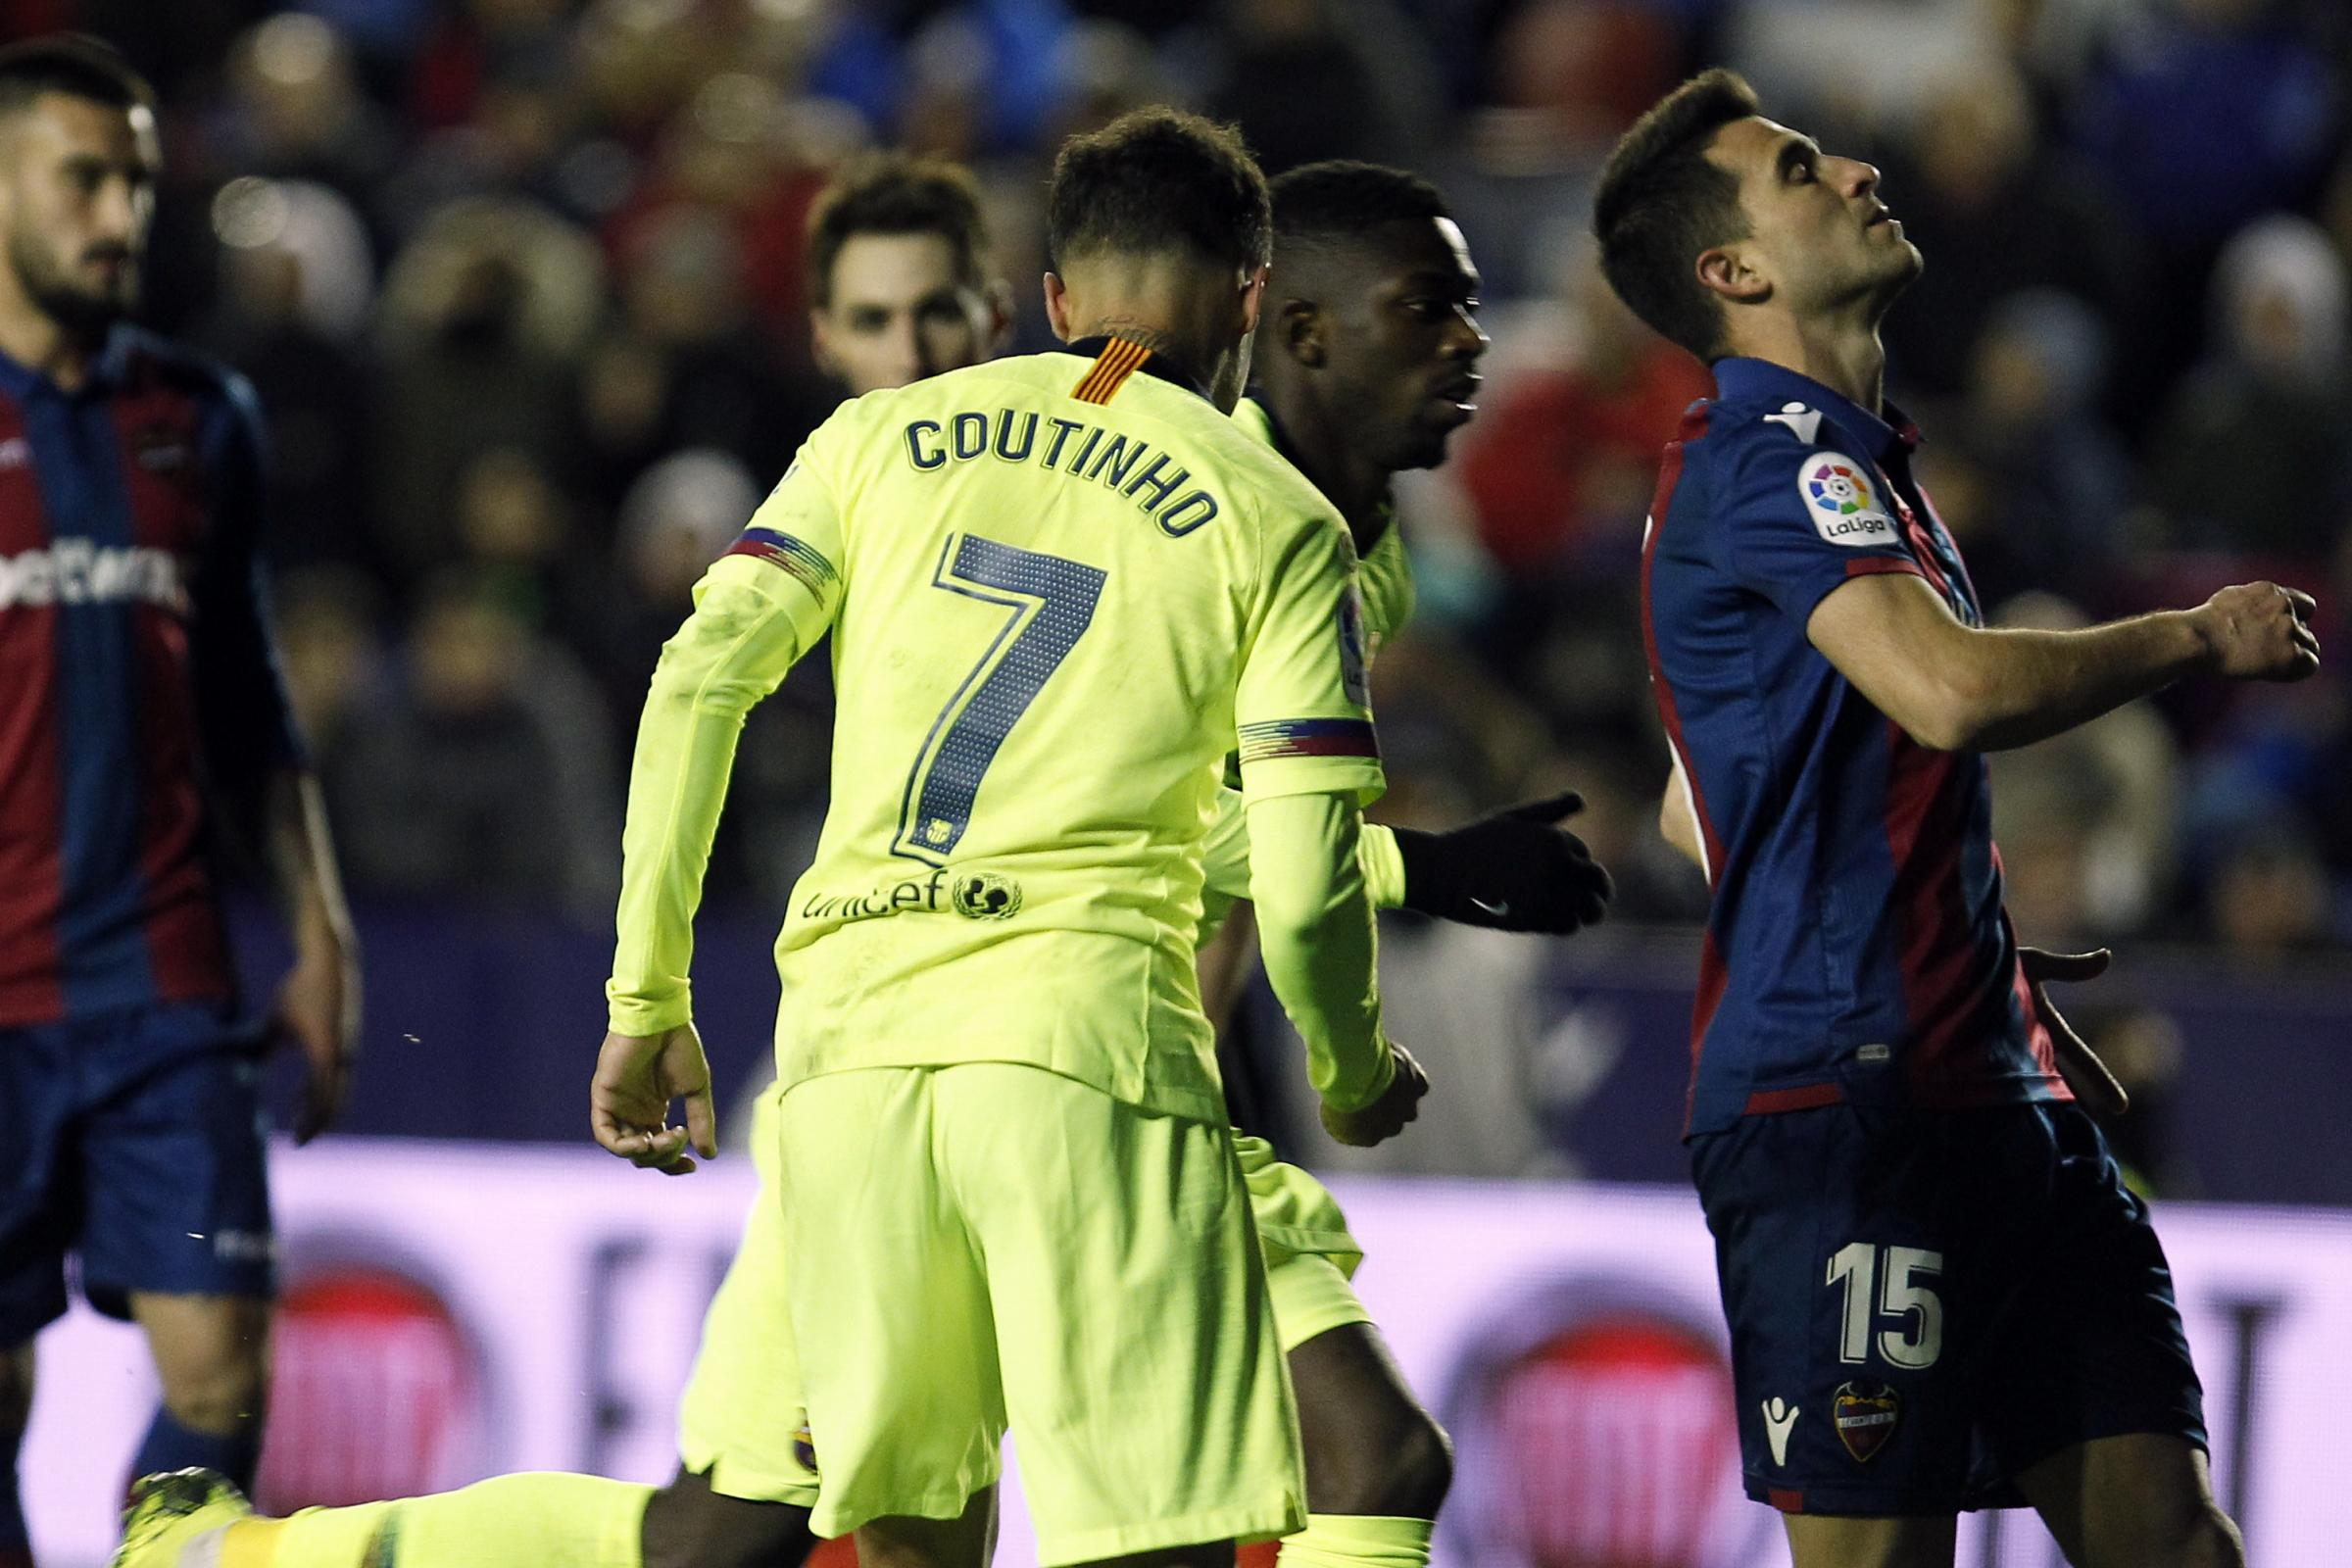 Philippe Coutinho scored late on for Barca